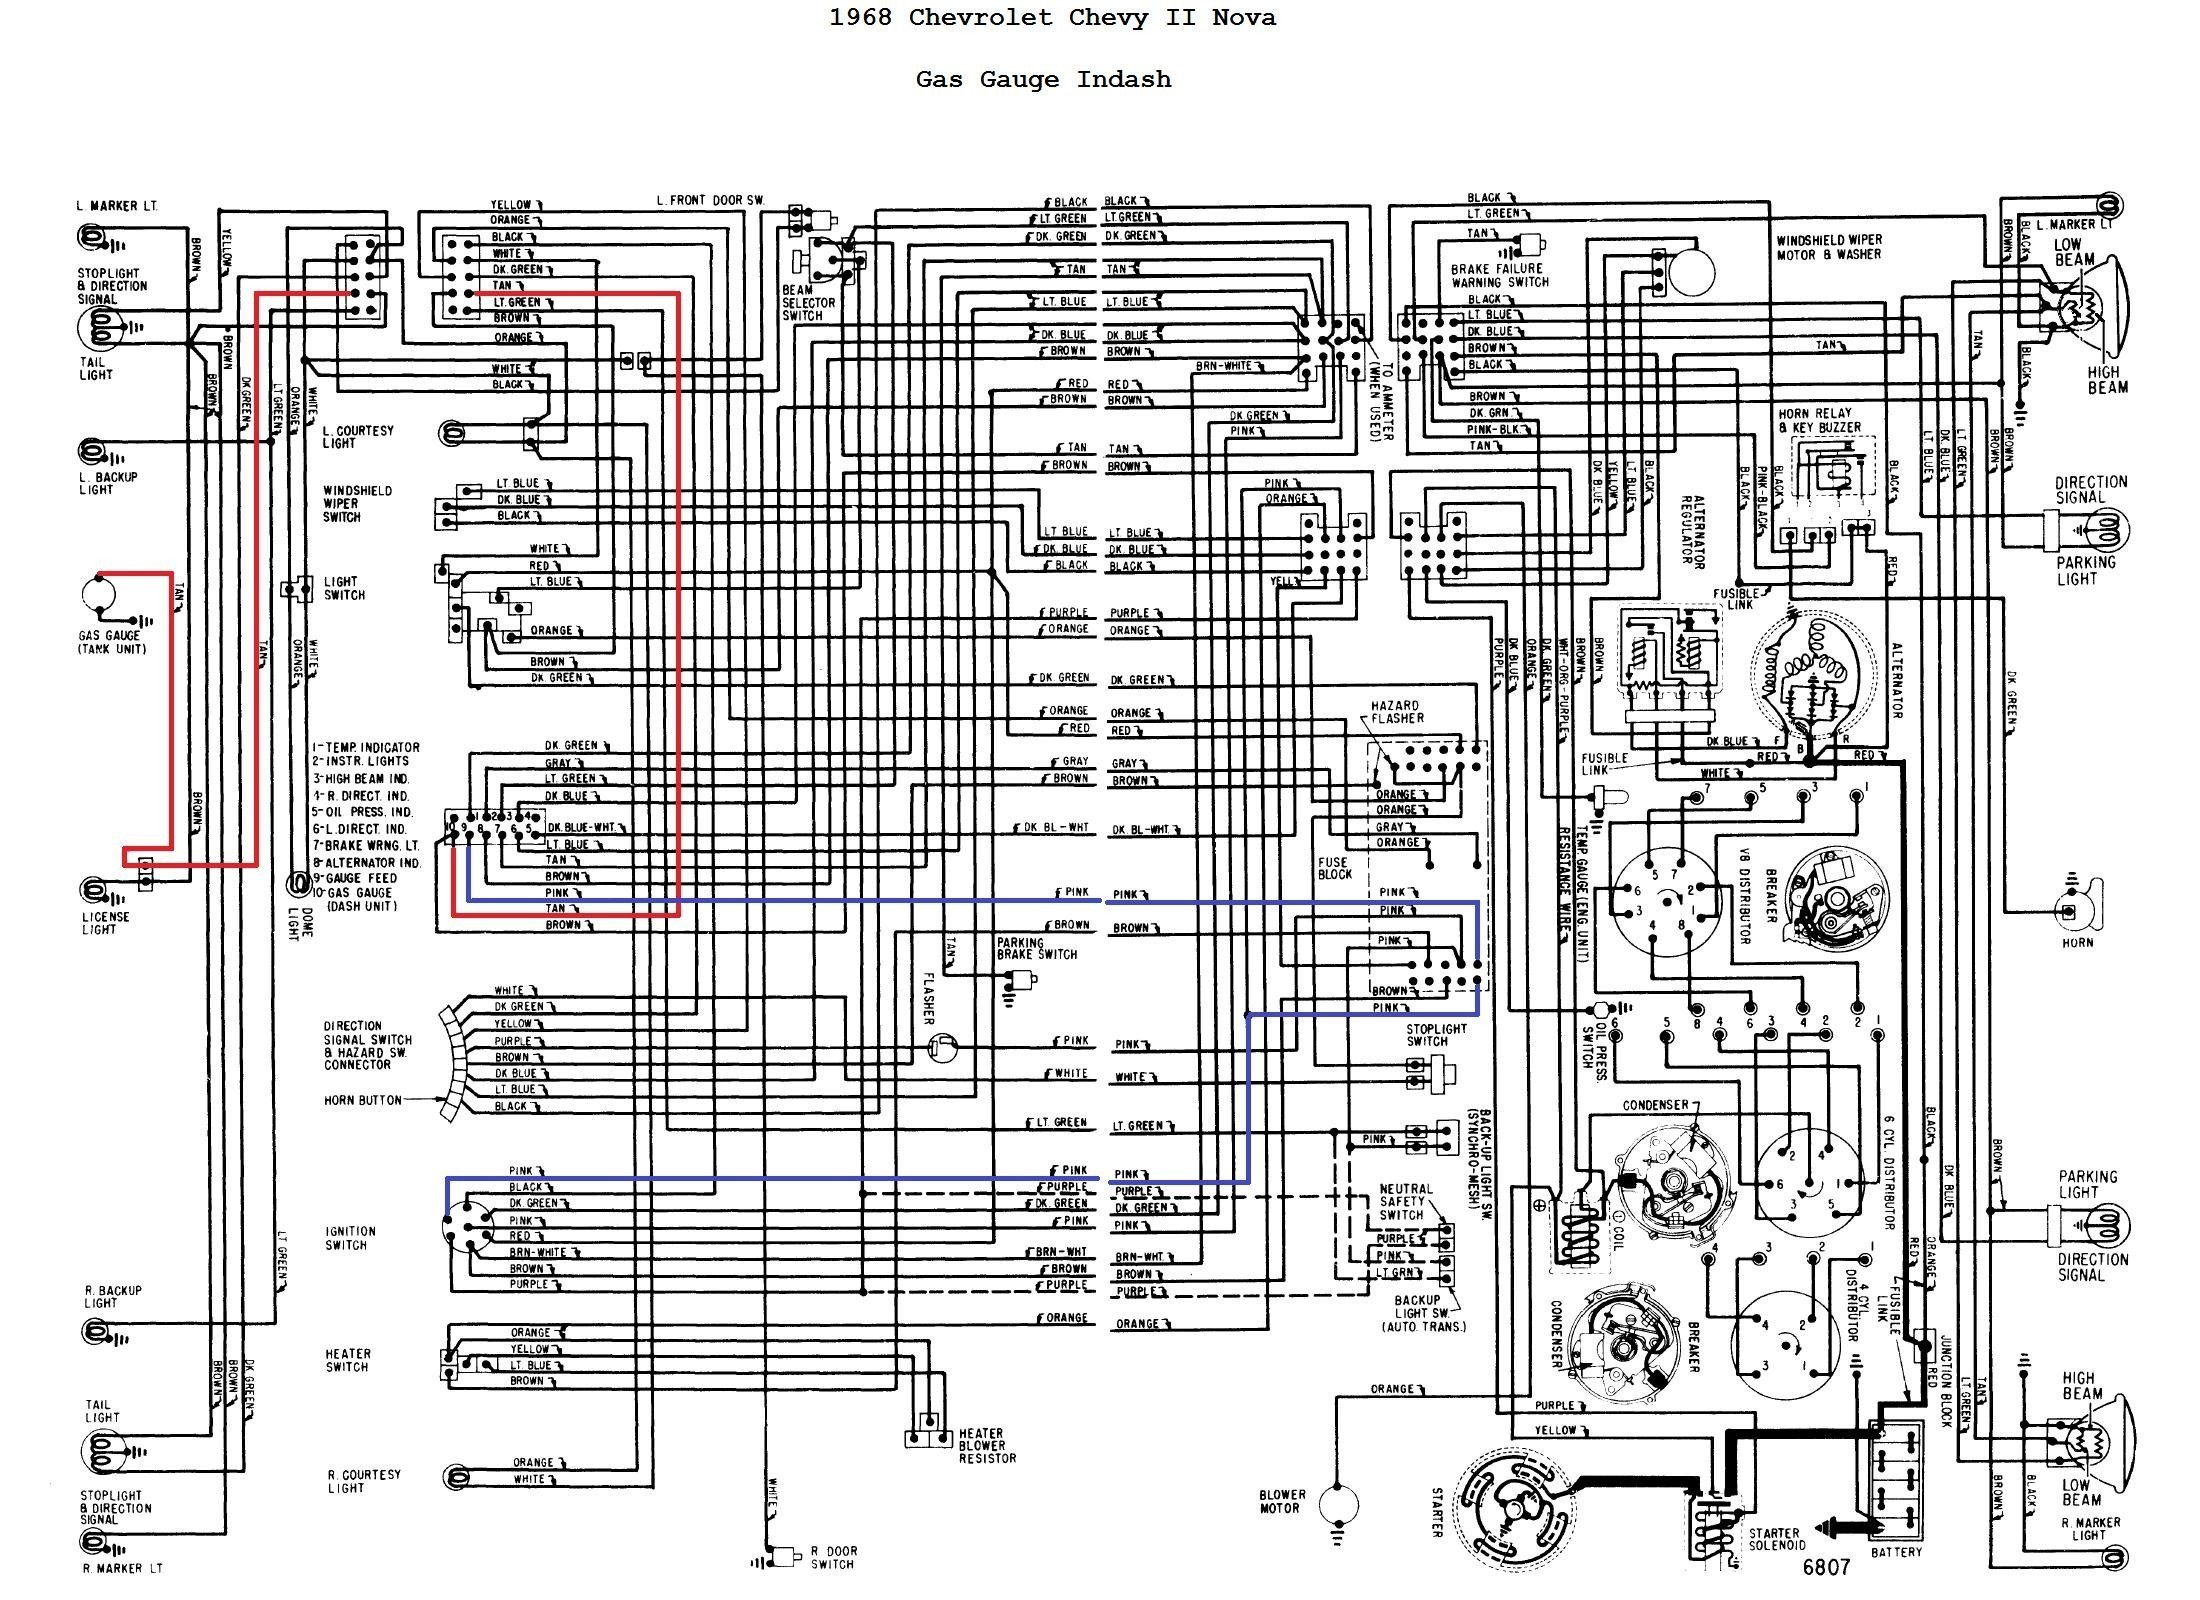 1969 Camaro Alternator Wiring Diagram Schematic Wiring Diagram Verison Verison Lastanzadeltempo It